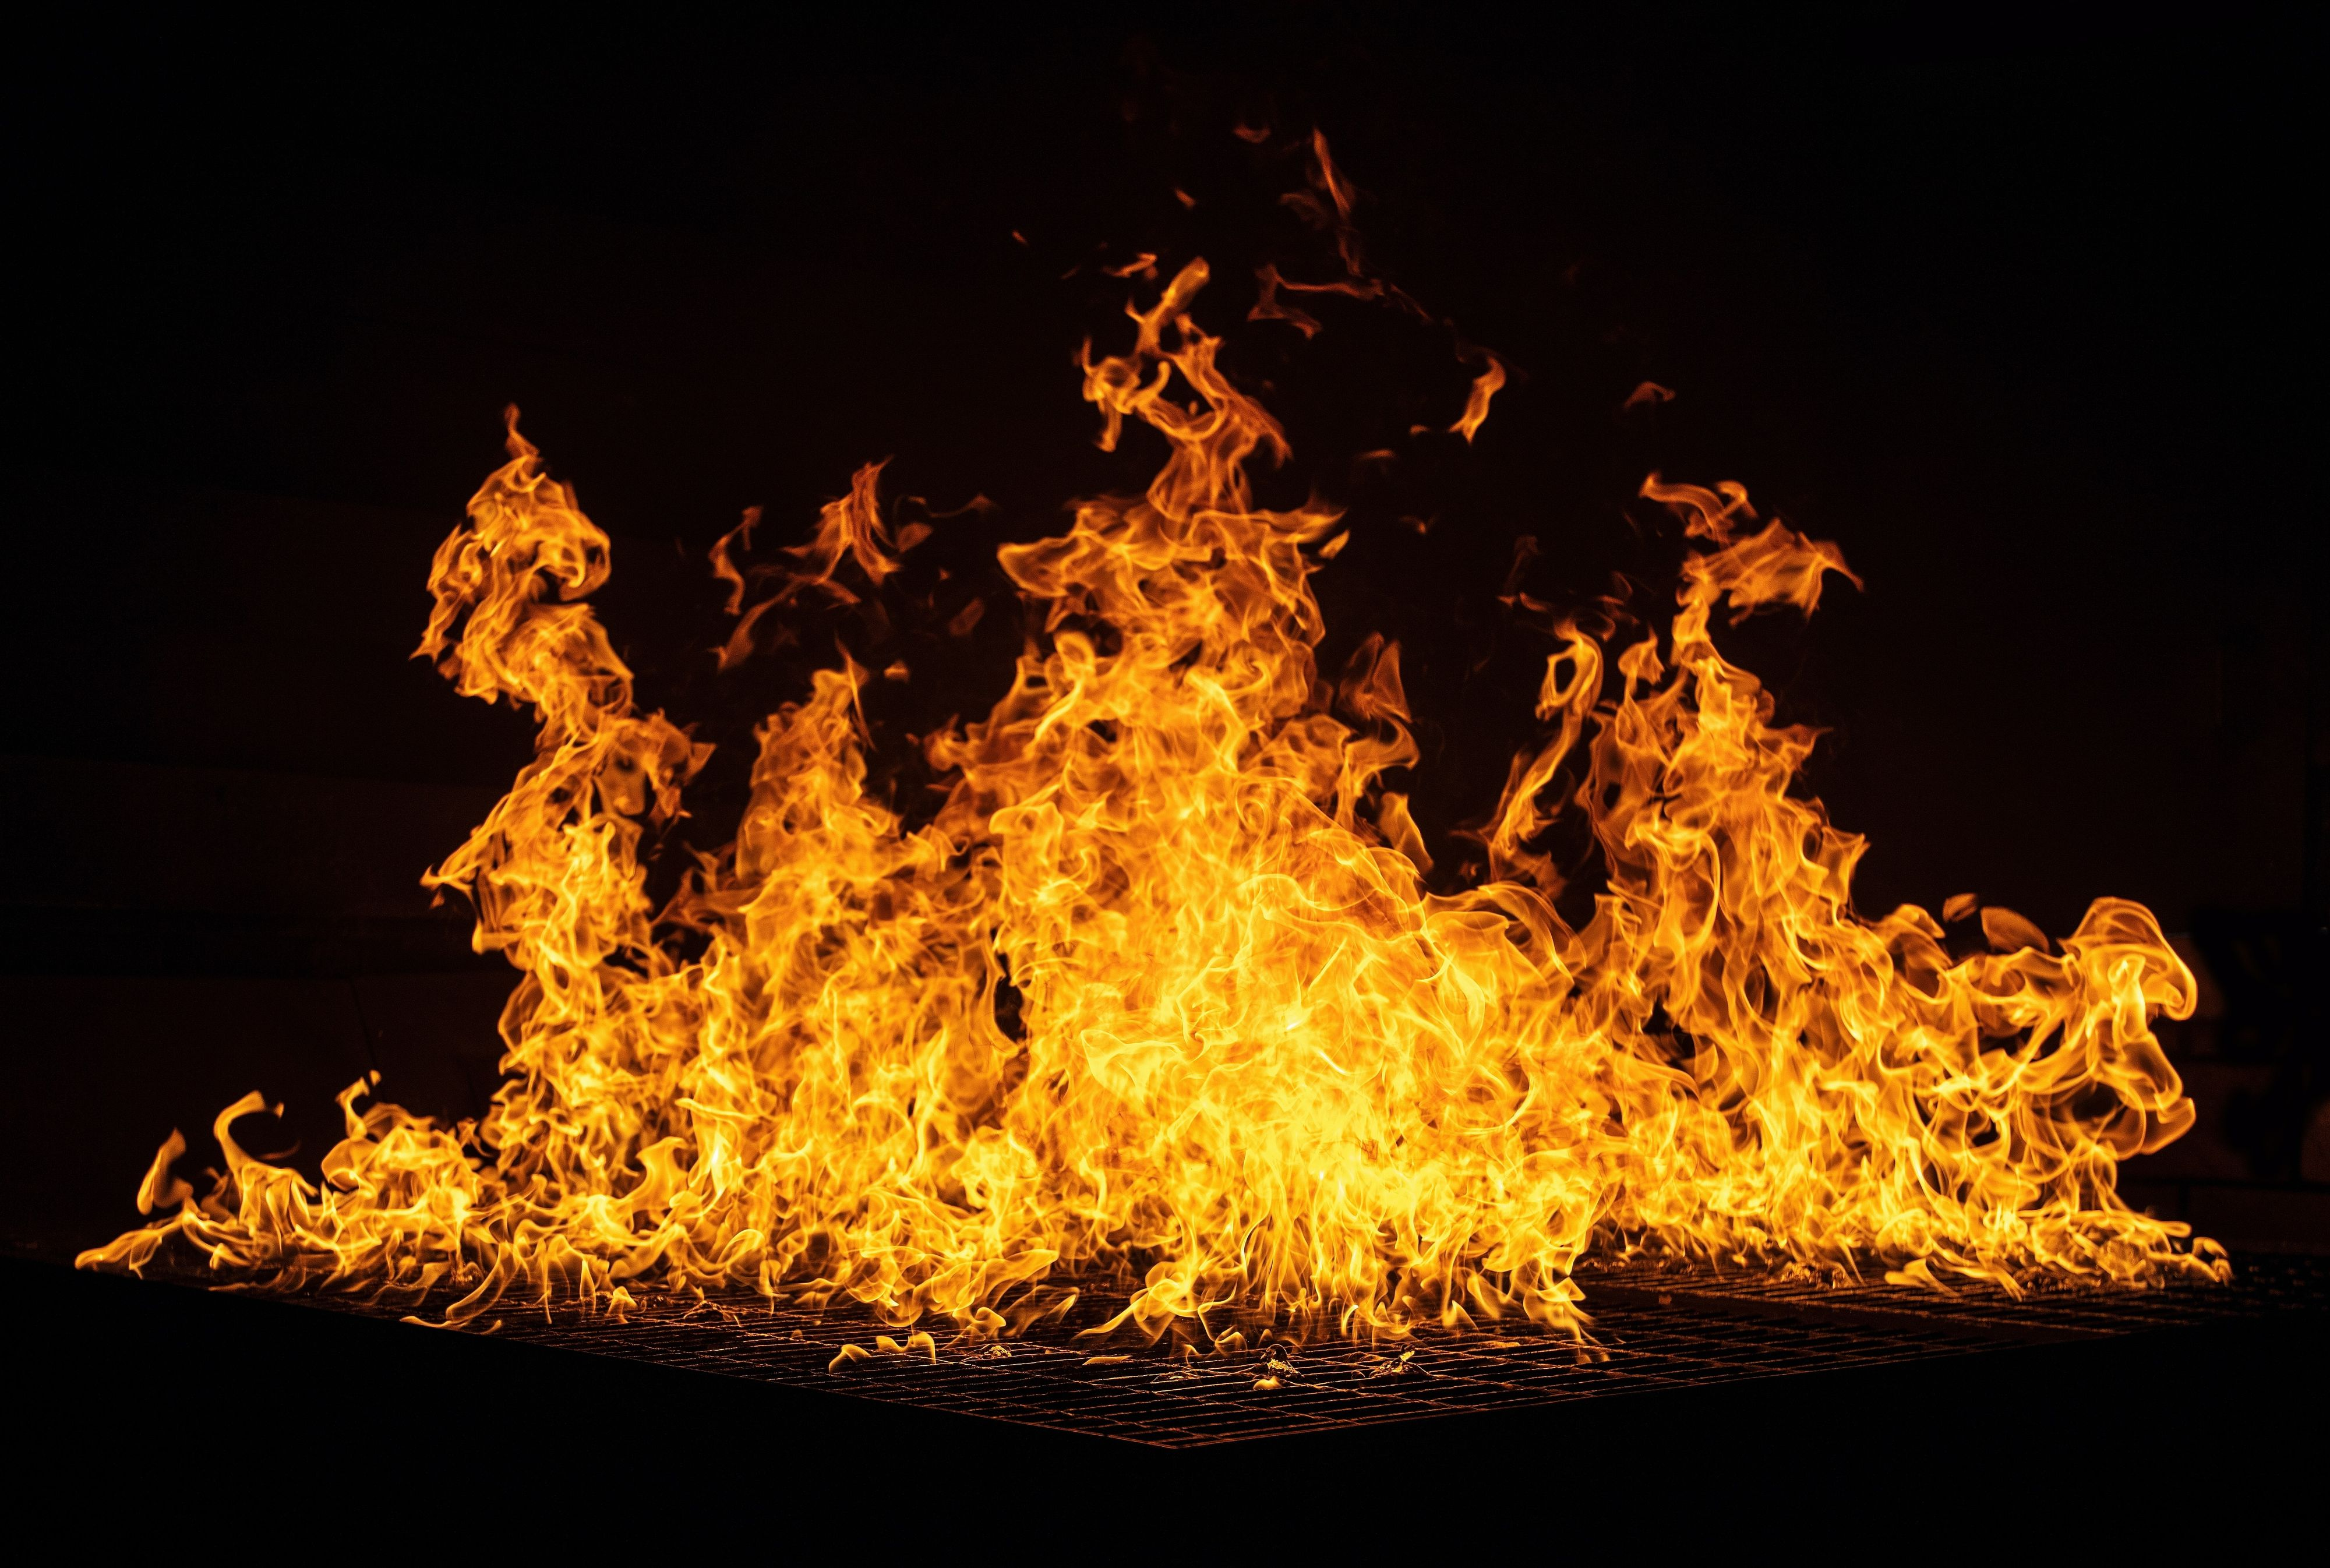 The Raging Fire of Inspiration